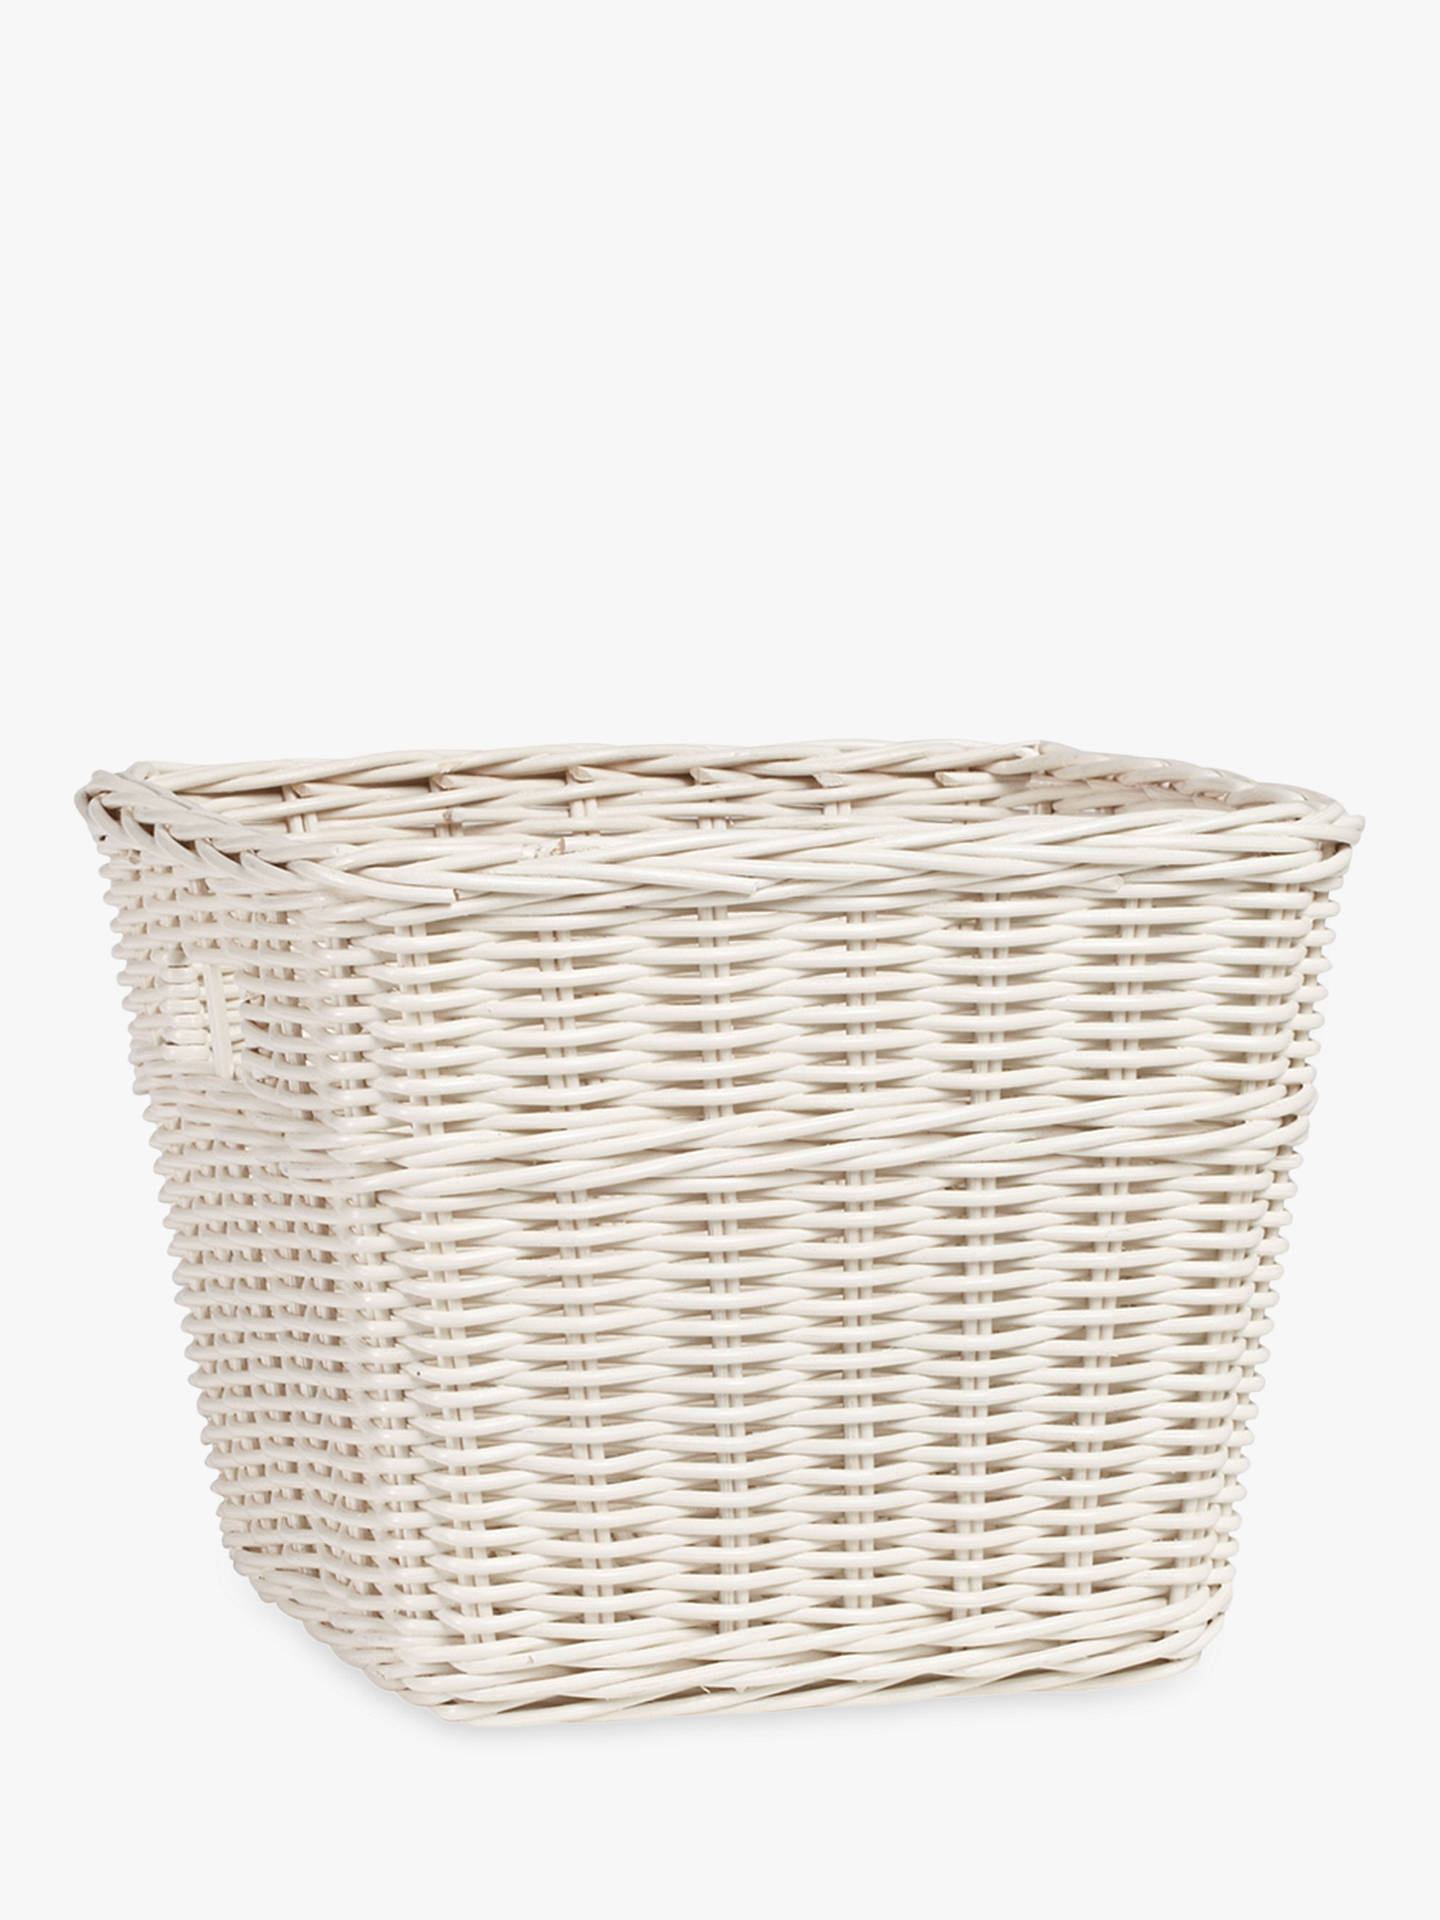 BuyPottery Barn Kids Sabrina Large Storage Basket, White Online at johnlewis.com